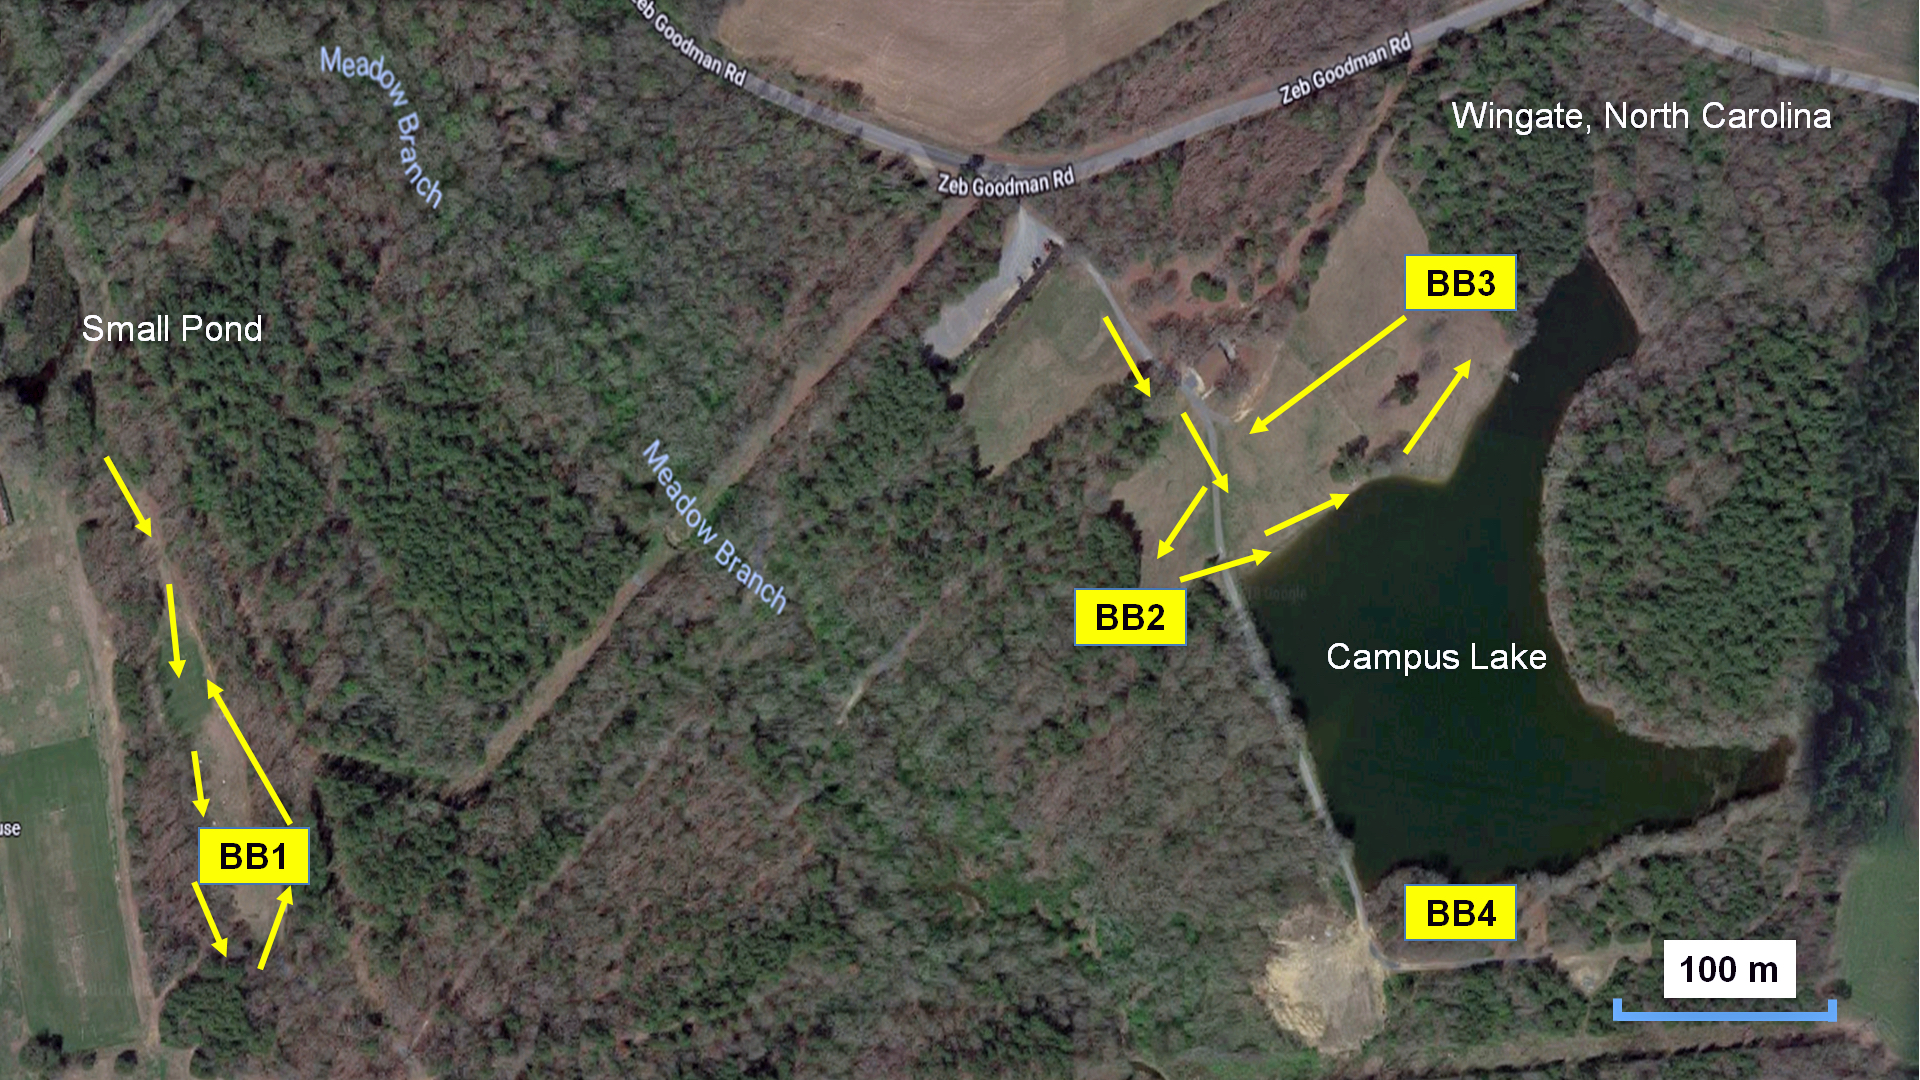 Figure 1. Google Earth map of study area on Wingate University Campus Lake.  This site is a mixture of hardwood forest, open mowed grassy fields, and trails. Areas of bat box deployment Bat boxes 1, 2, 3, and 4 (BB1, BB2, BB3, and BB4) shown in yellow boxes with arrows indicating survey location of call recording. BB1 and BB2 included temperature loggers and were suspended 20 feet on trees with BB1 in full sun and BB2 in partial sun. BB3 and BB4 were in full sun but were not utilized for temperature data. Google map data retrieved 11/2/2018, https://www.google.com/maps/@34.9865251,-80.4310875,639m/data=!3m1!1e3.